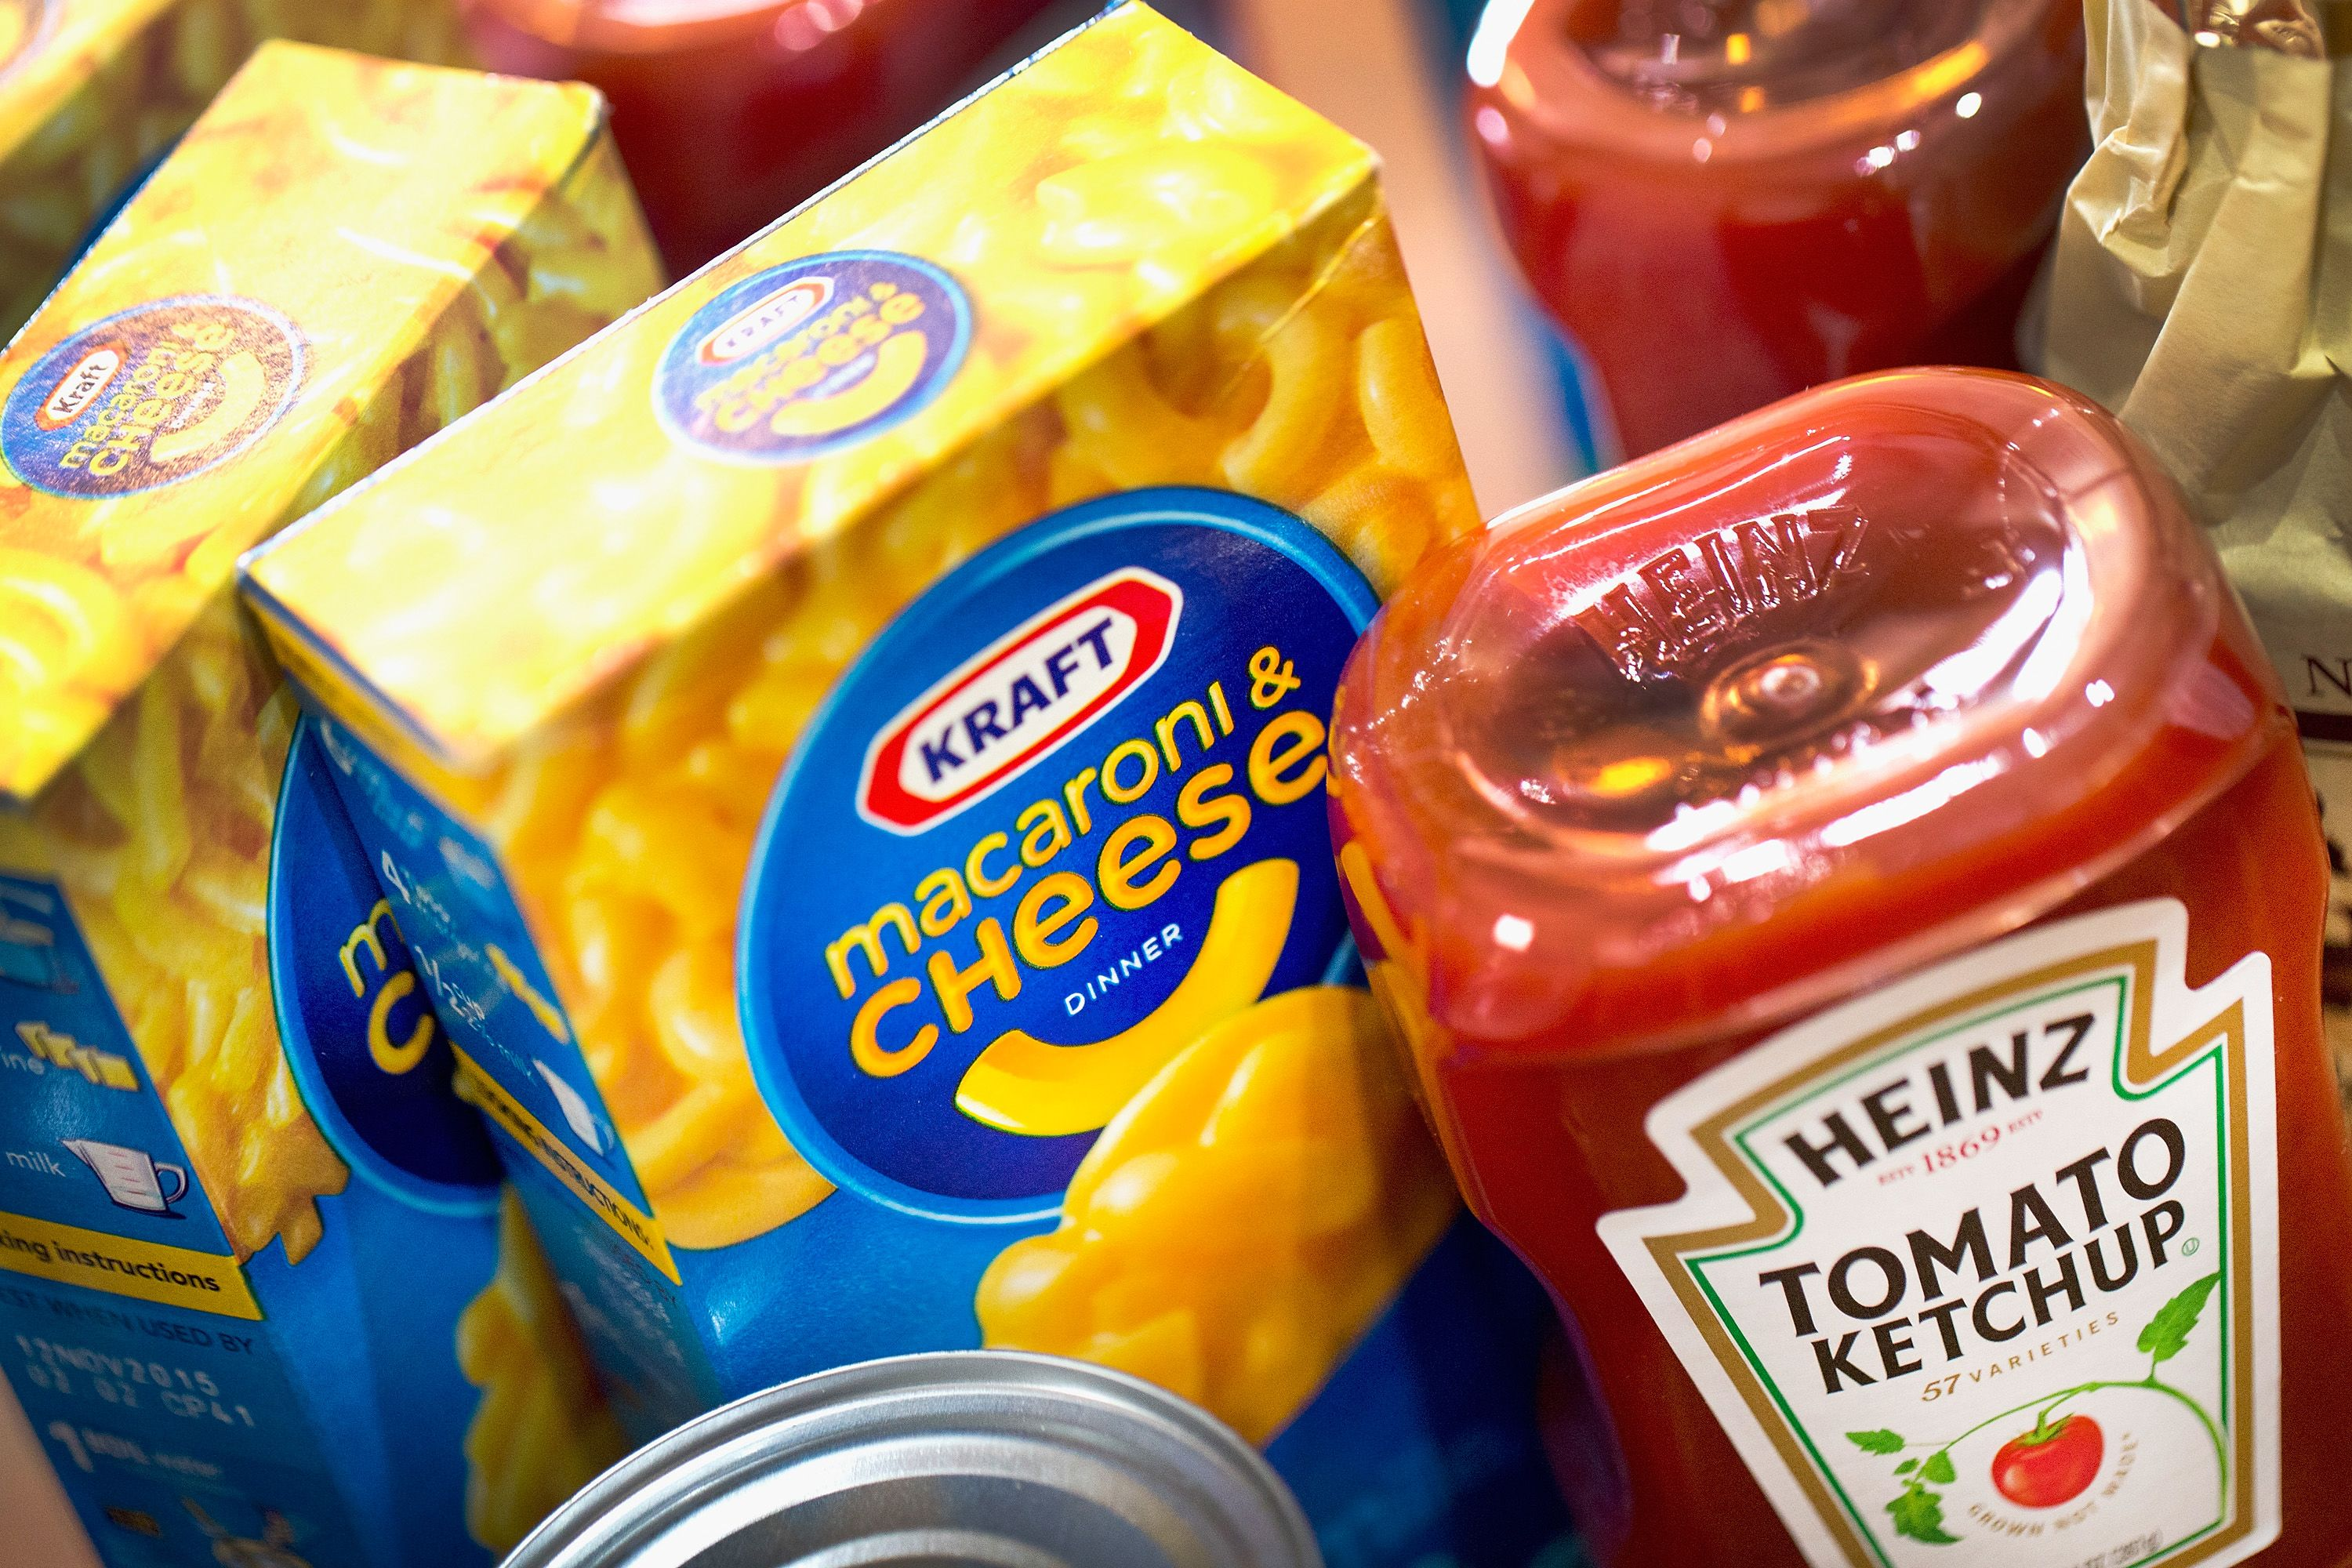 Misconduct at Kraft Heinz puts spotlight on pressure to meet targets